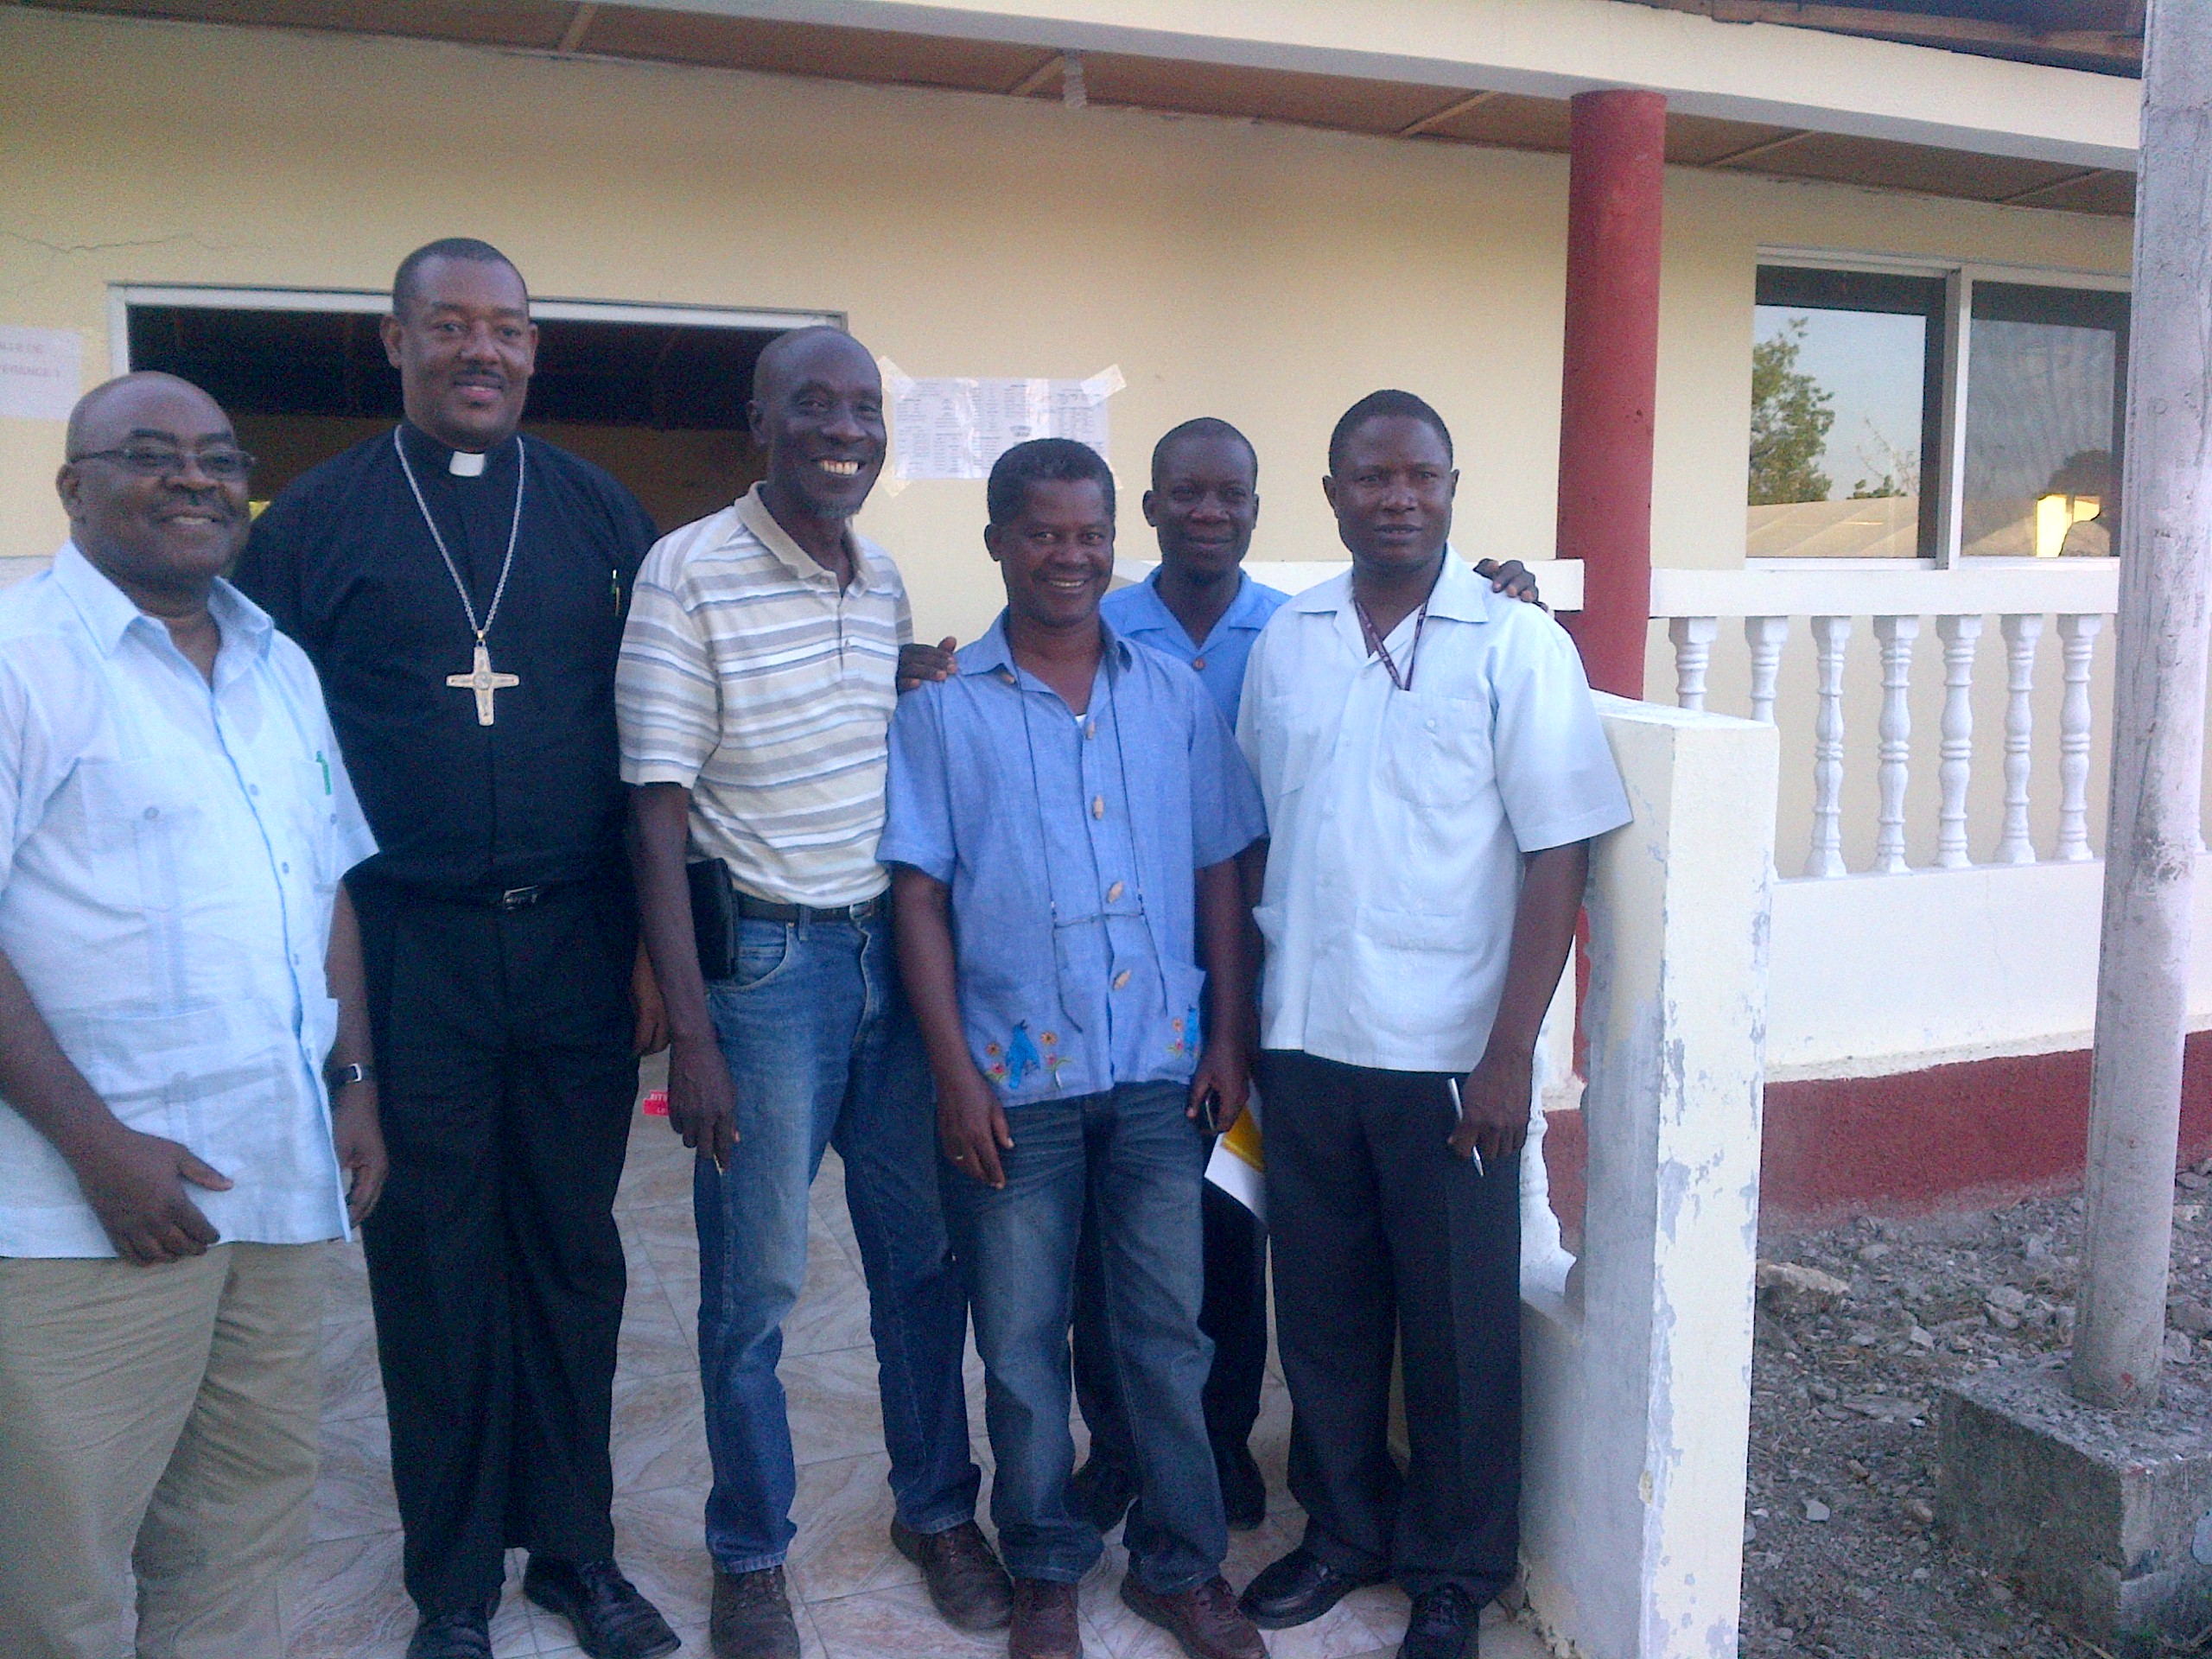 PICO Staff Meet With Haiti Leaders